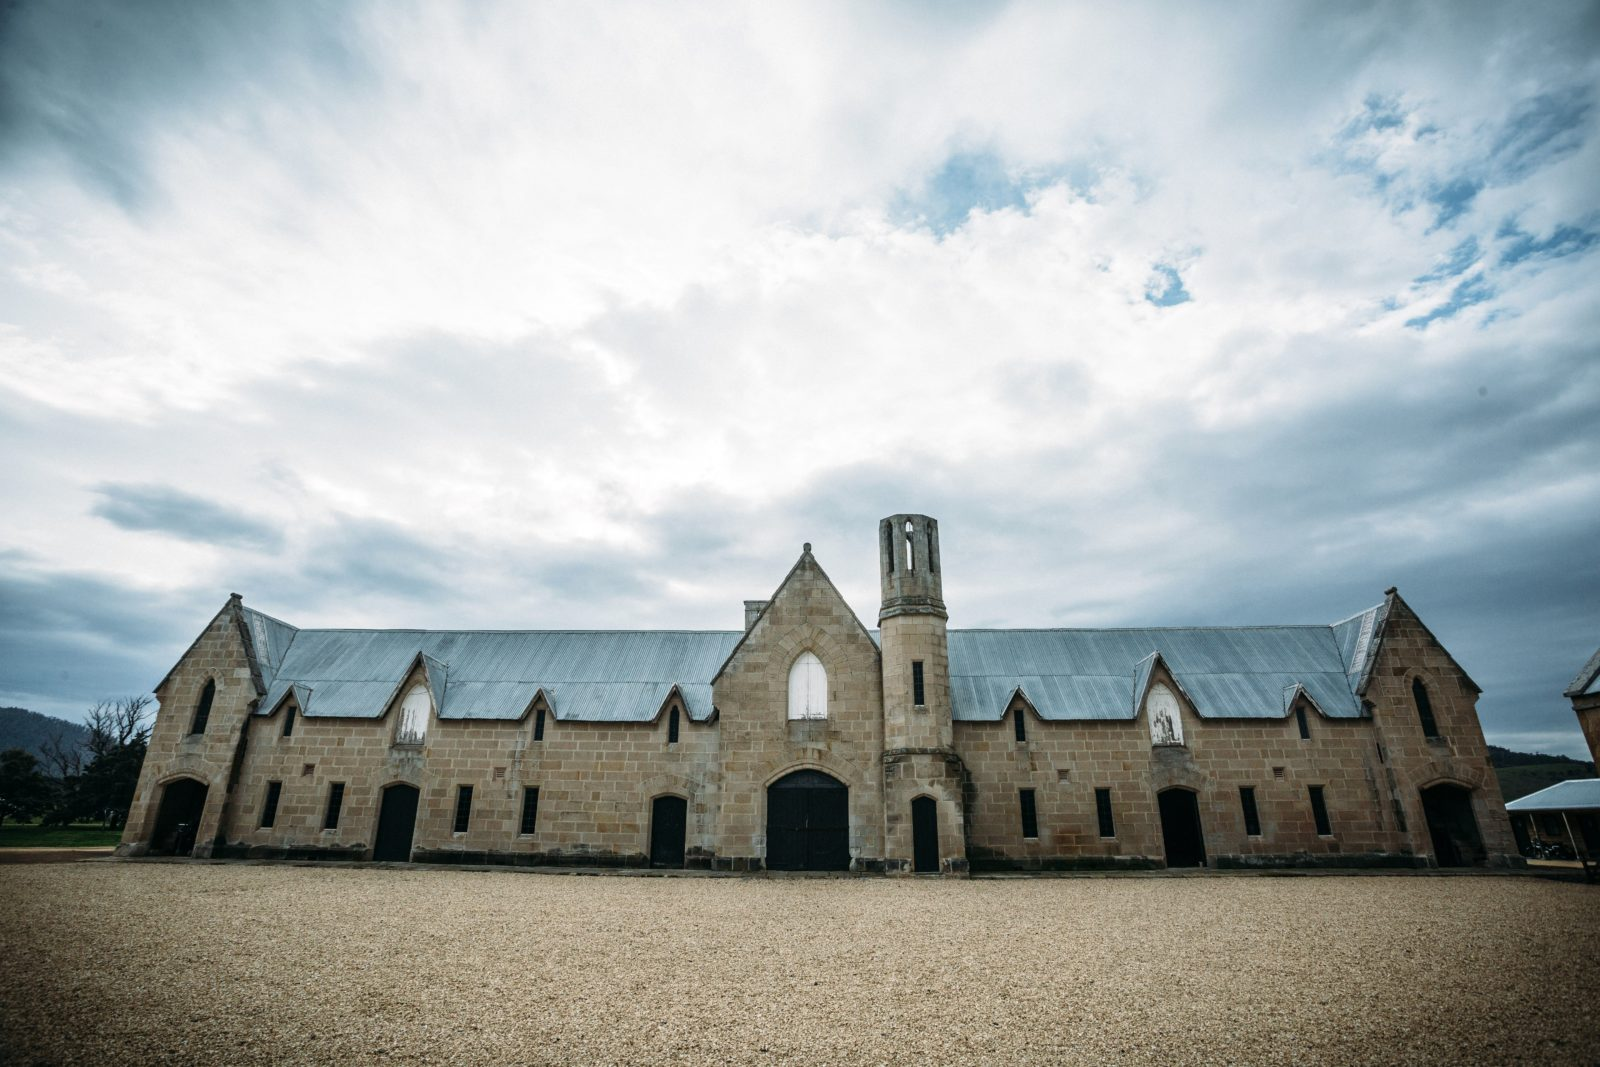 The 1851 Gothic stables built by convicts.